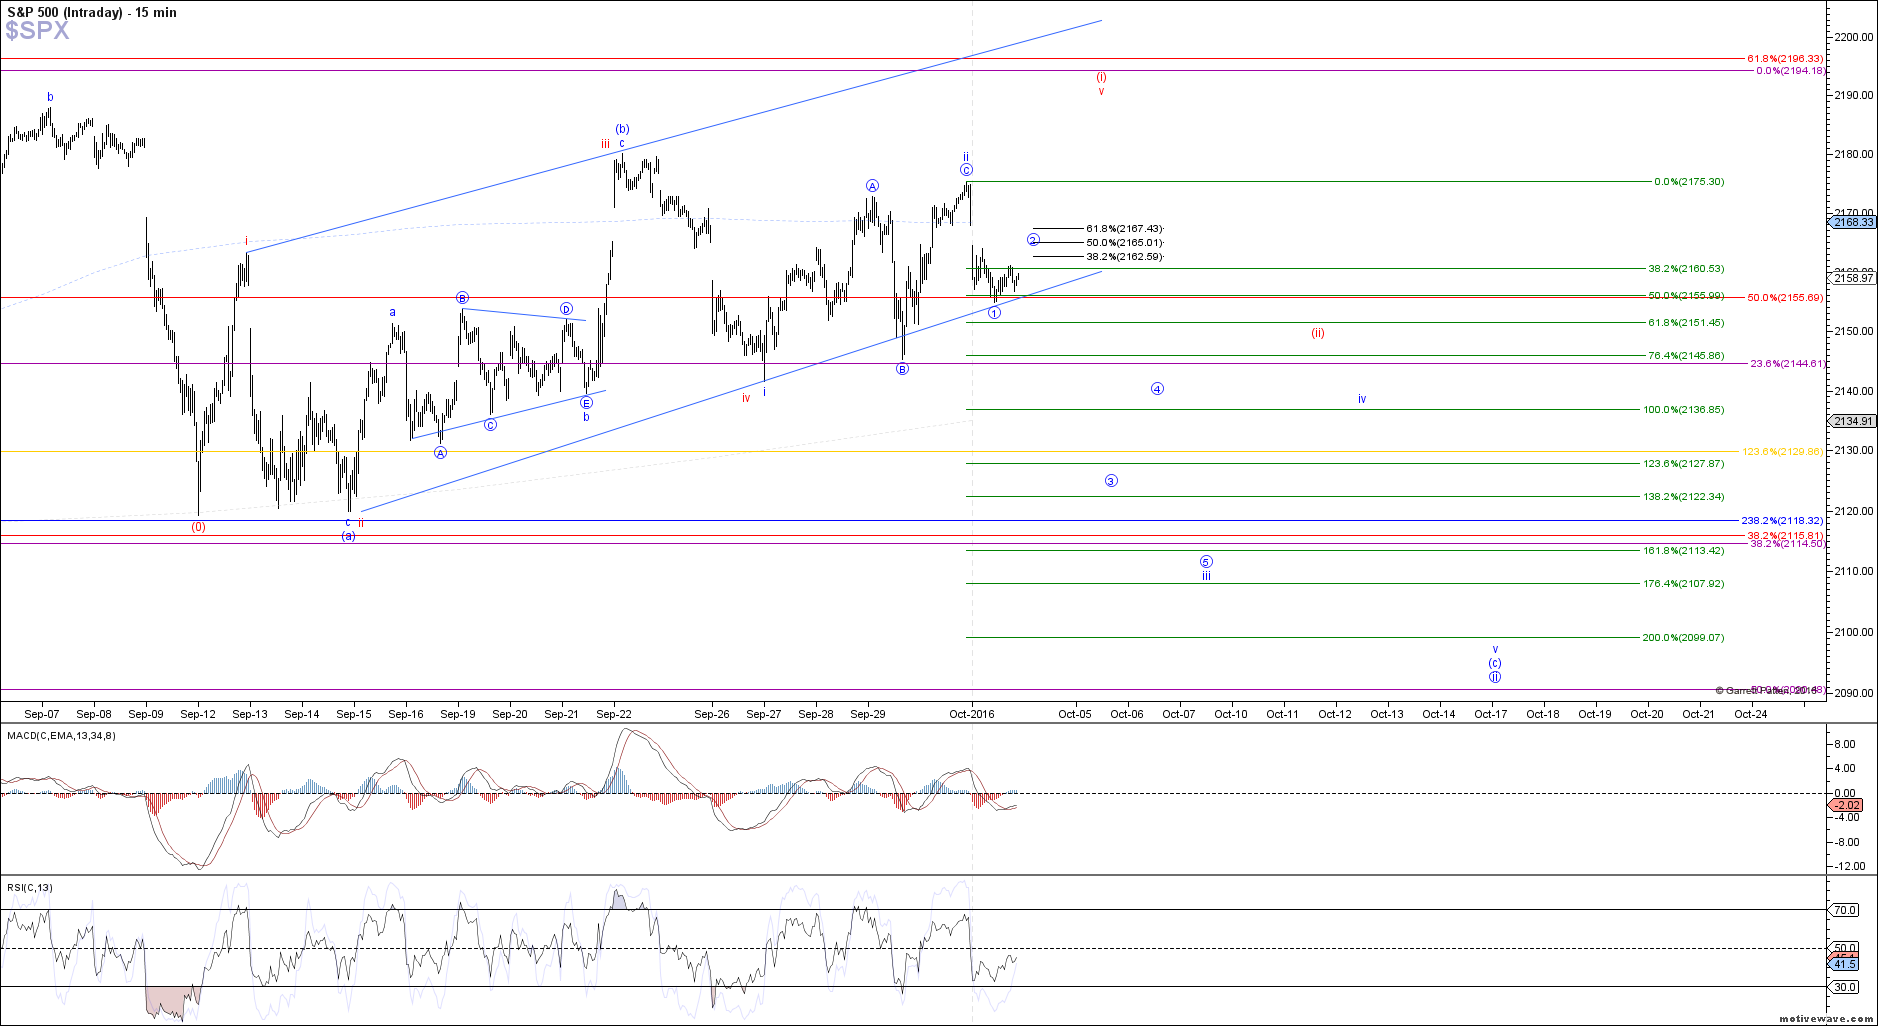 $SPX - Intraday - Oct-03 1326 PM (15 min)